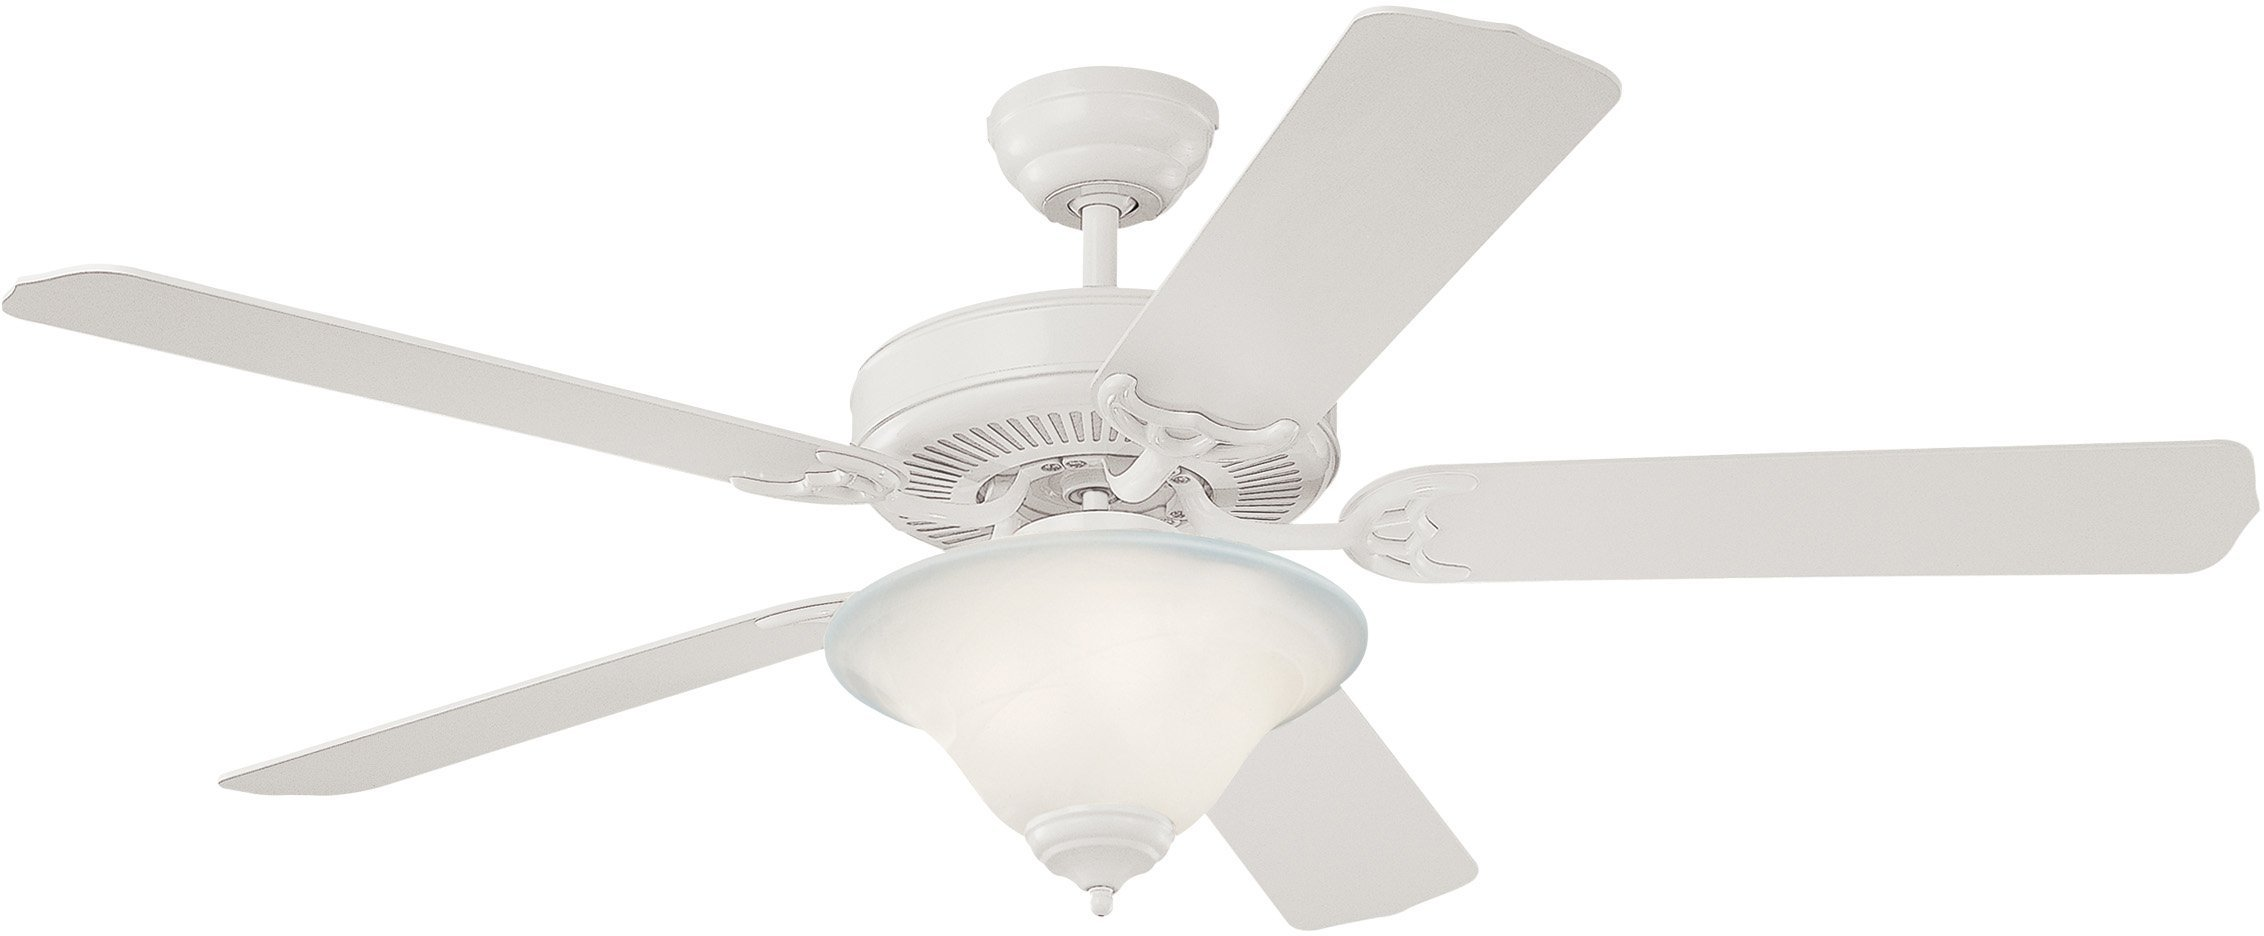 Monte Carlo 5HS52WHD-L, Homeowner Deluxe White 52'' Ceiling Fan with Light